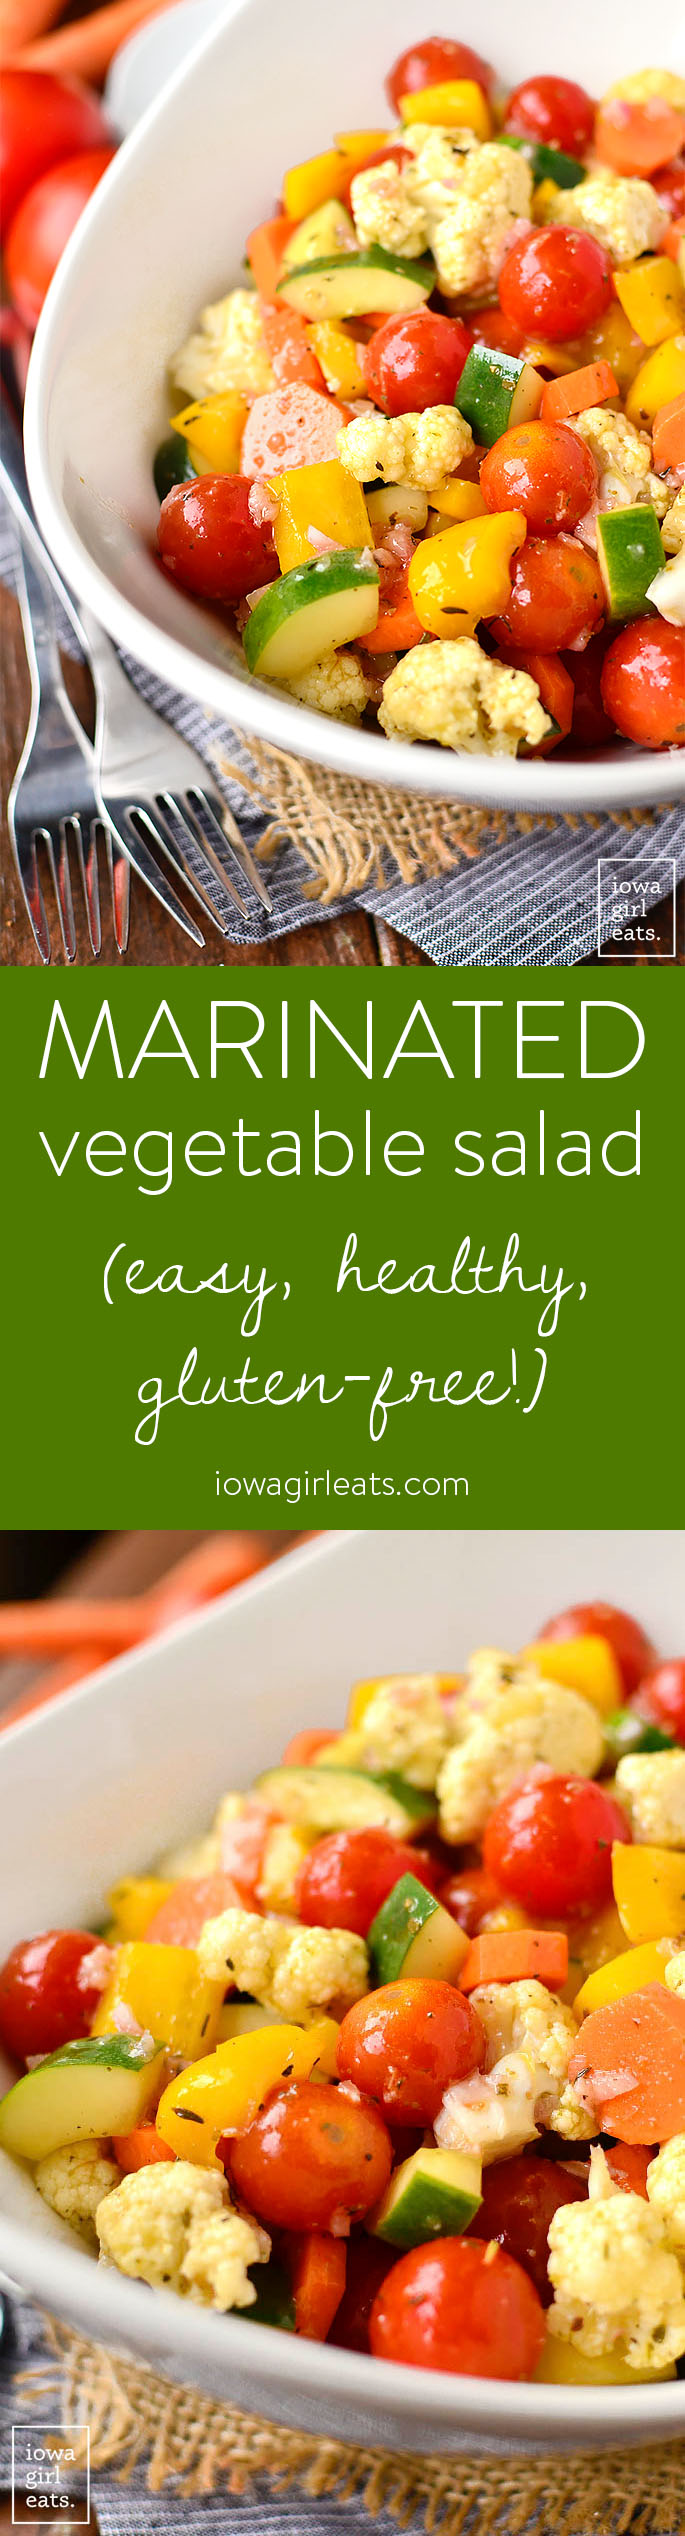 Marinated Vegetable Salad is a healthy salad recipe highlighting fresh summer vegetables. Toss with tangy vinaigrette then marinate overnight for a quick and easy side dish! | iowagirleats.com